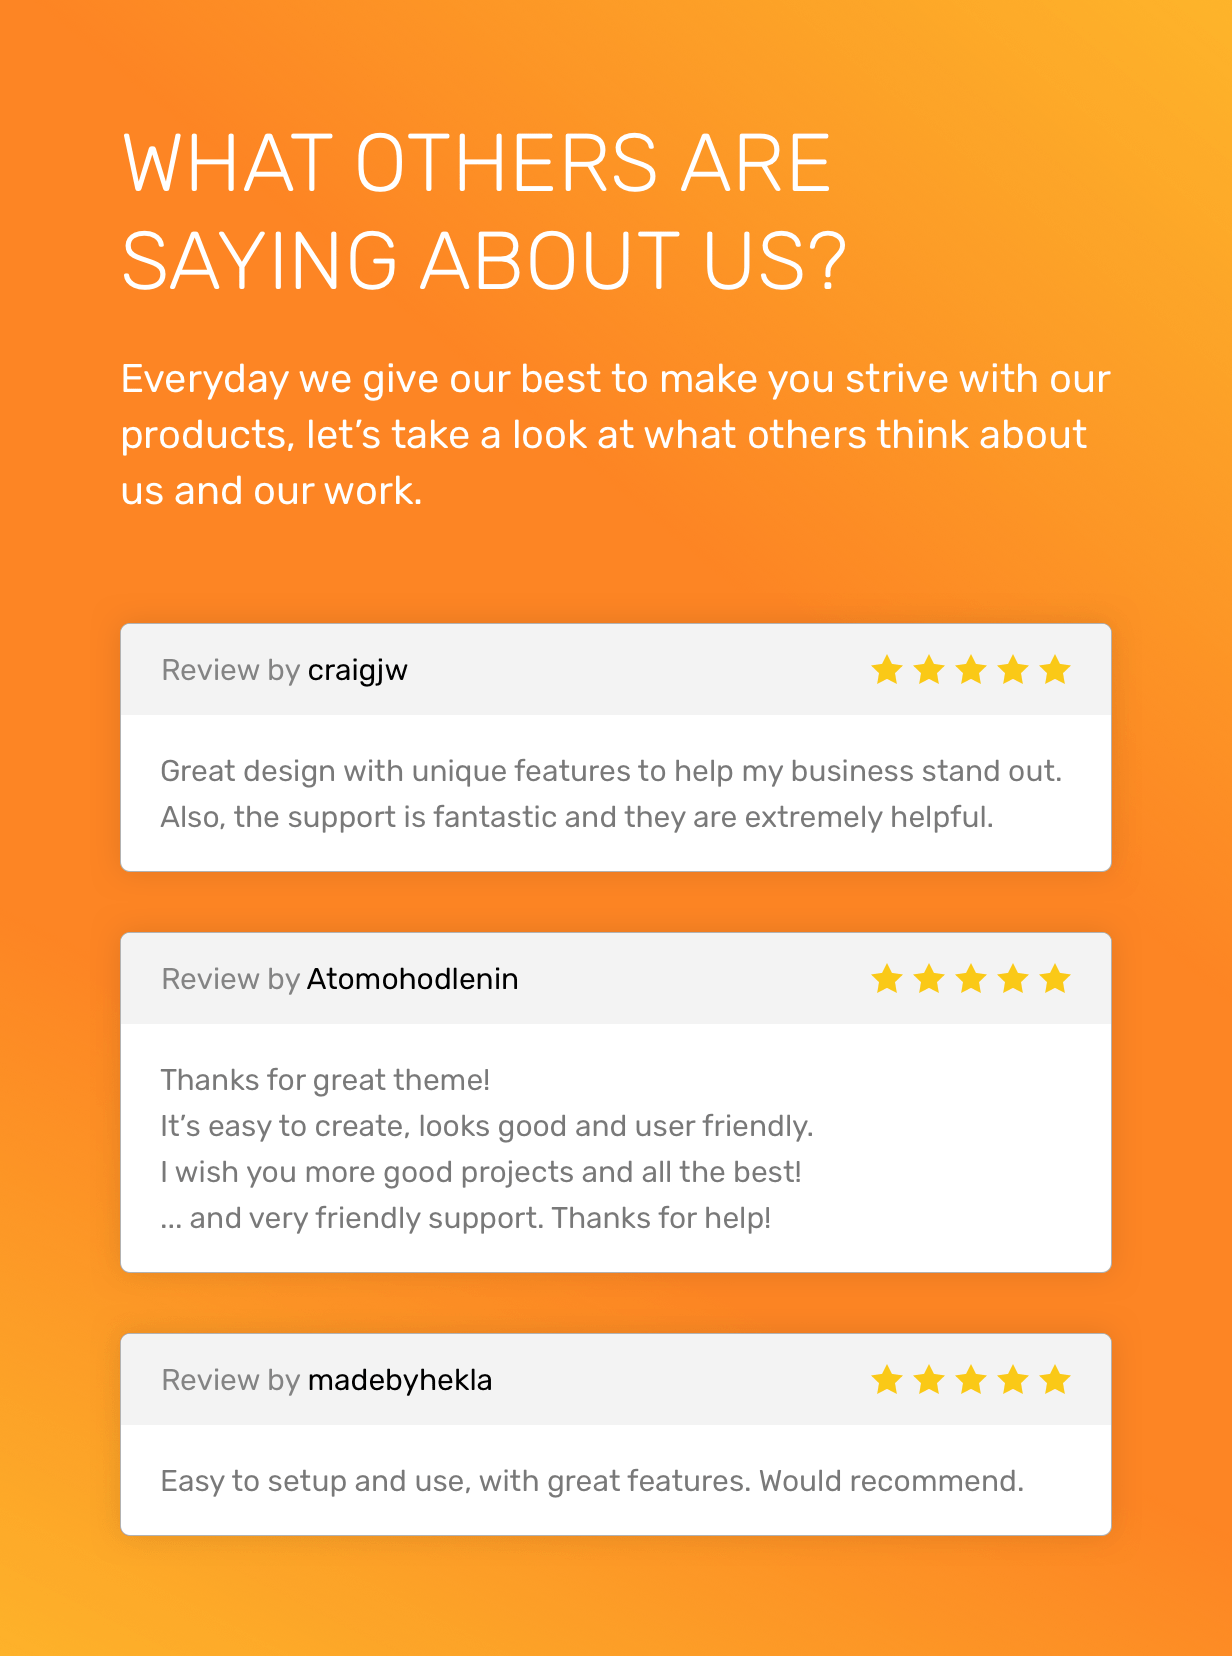 What others are saying about us?